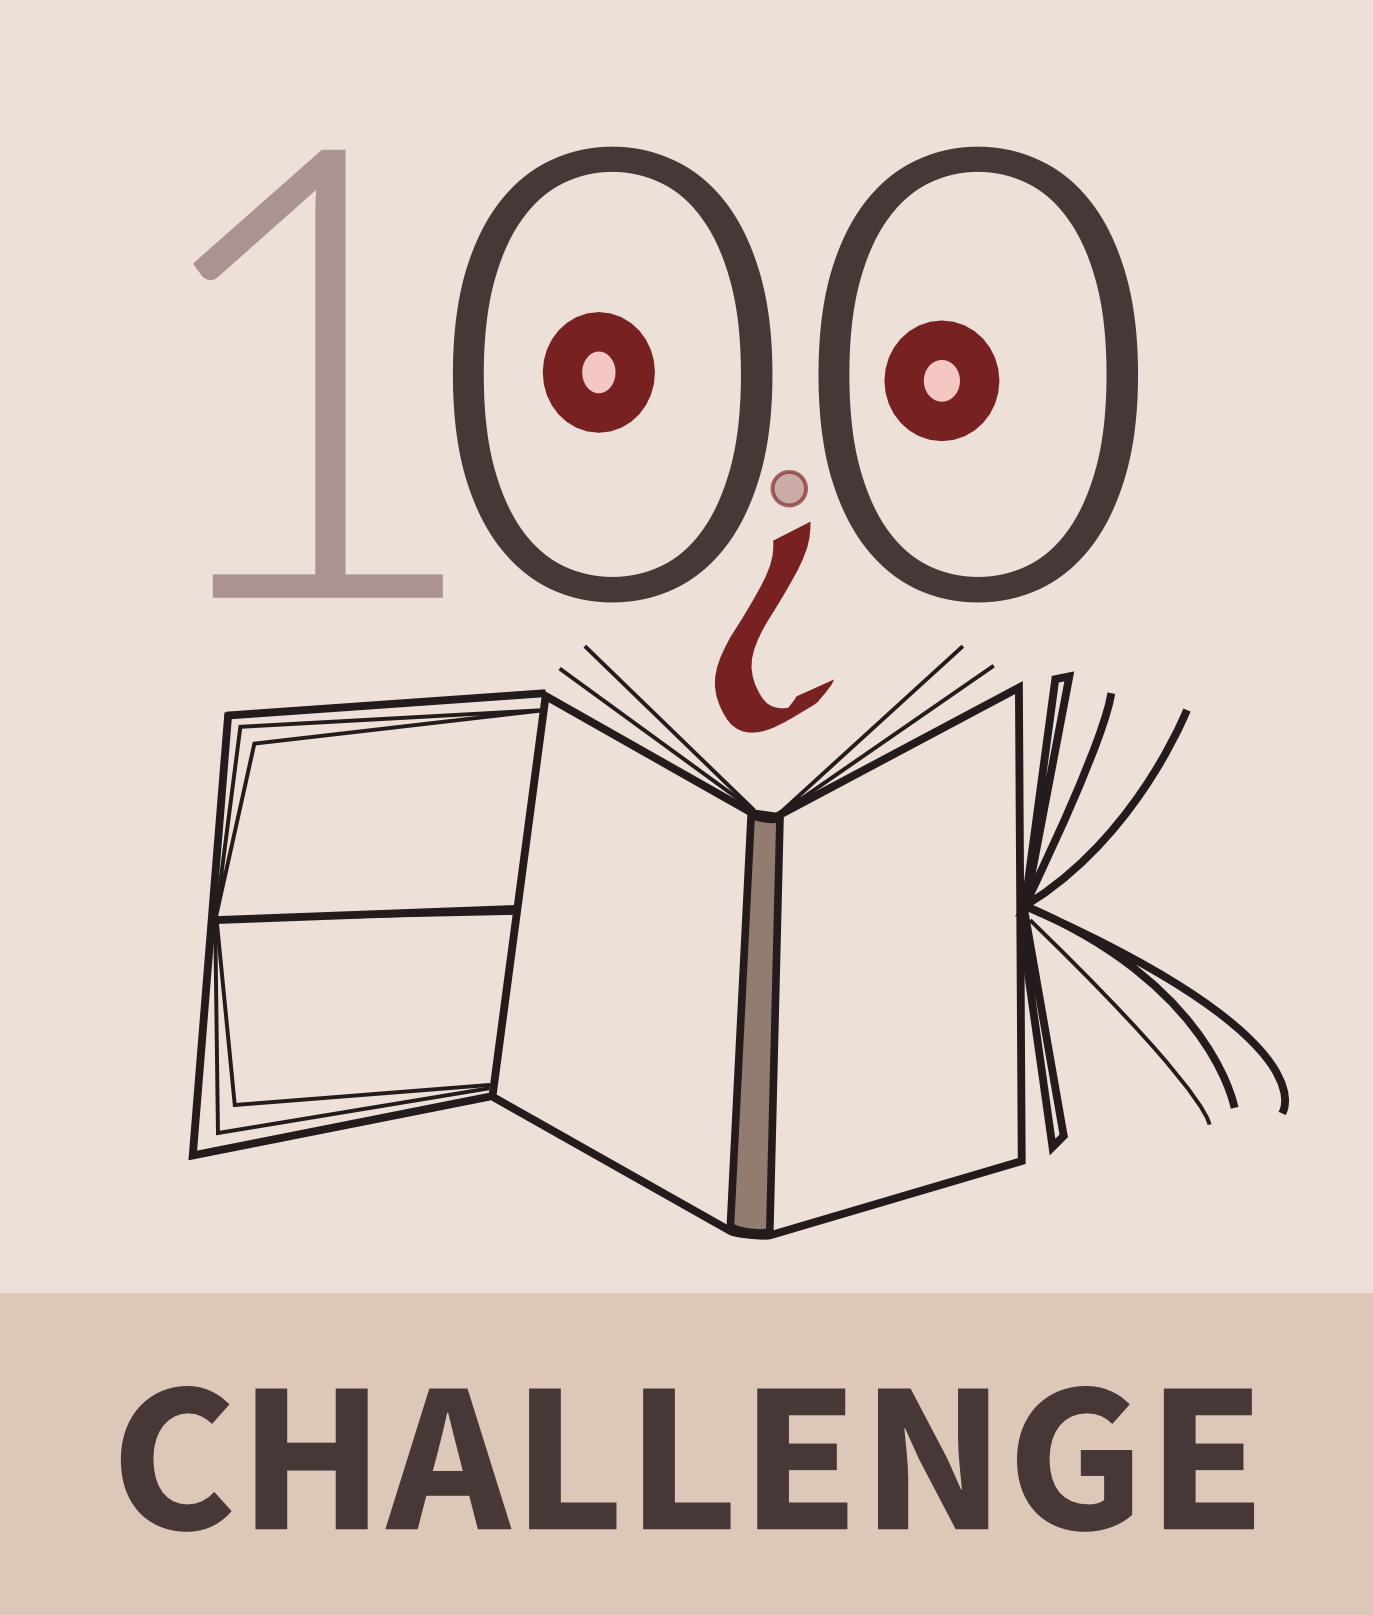 Book challenge clipart vector transparent What I learned by reading 100 books in a year — The Autodidacts vector transparent